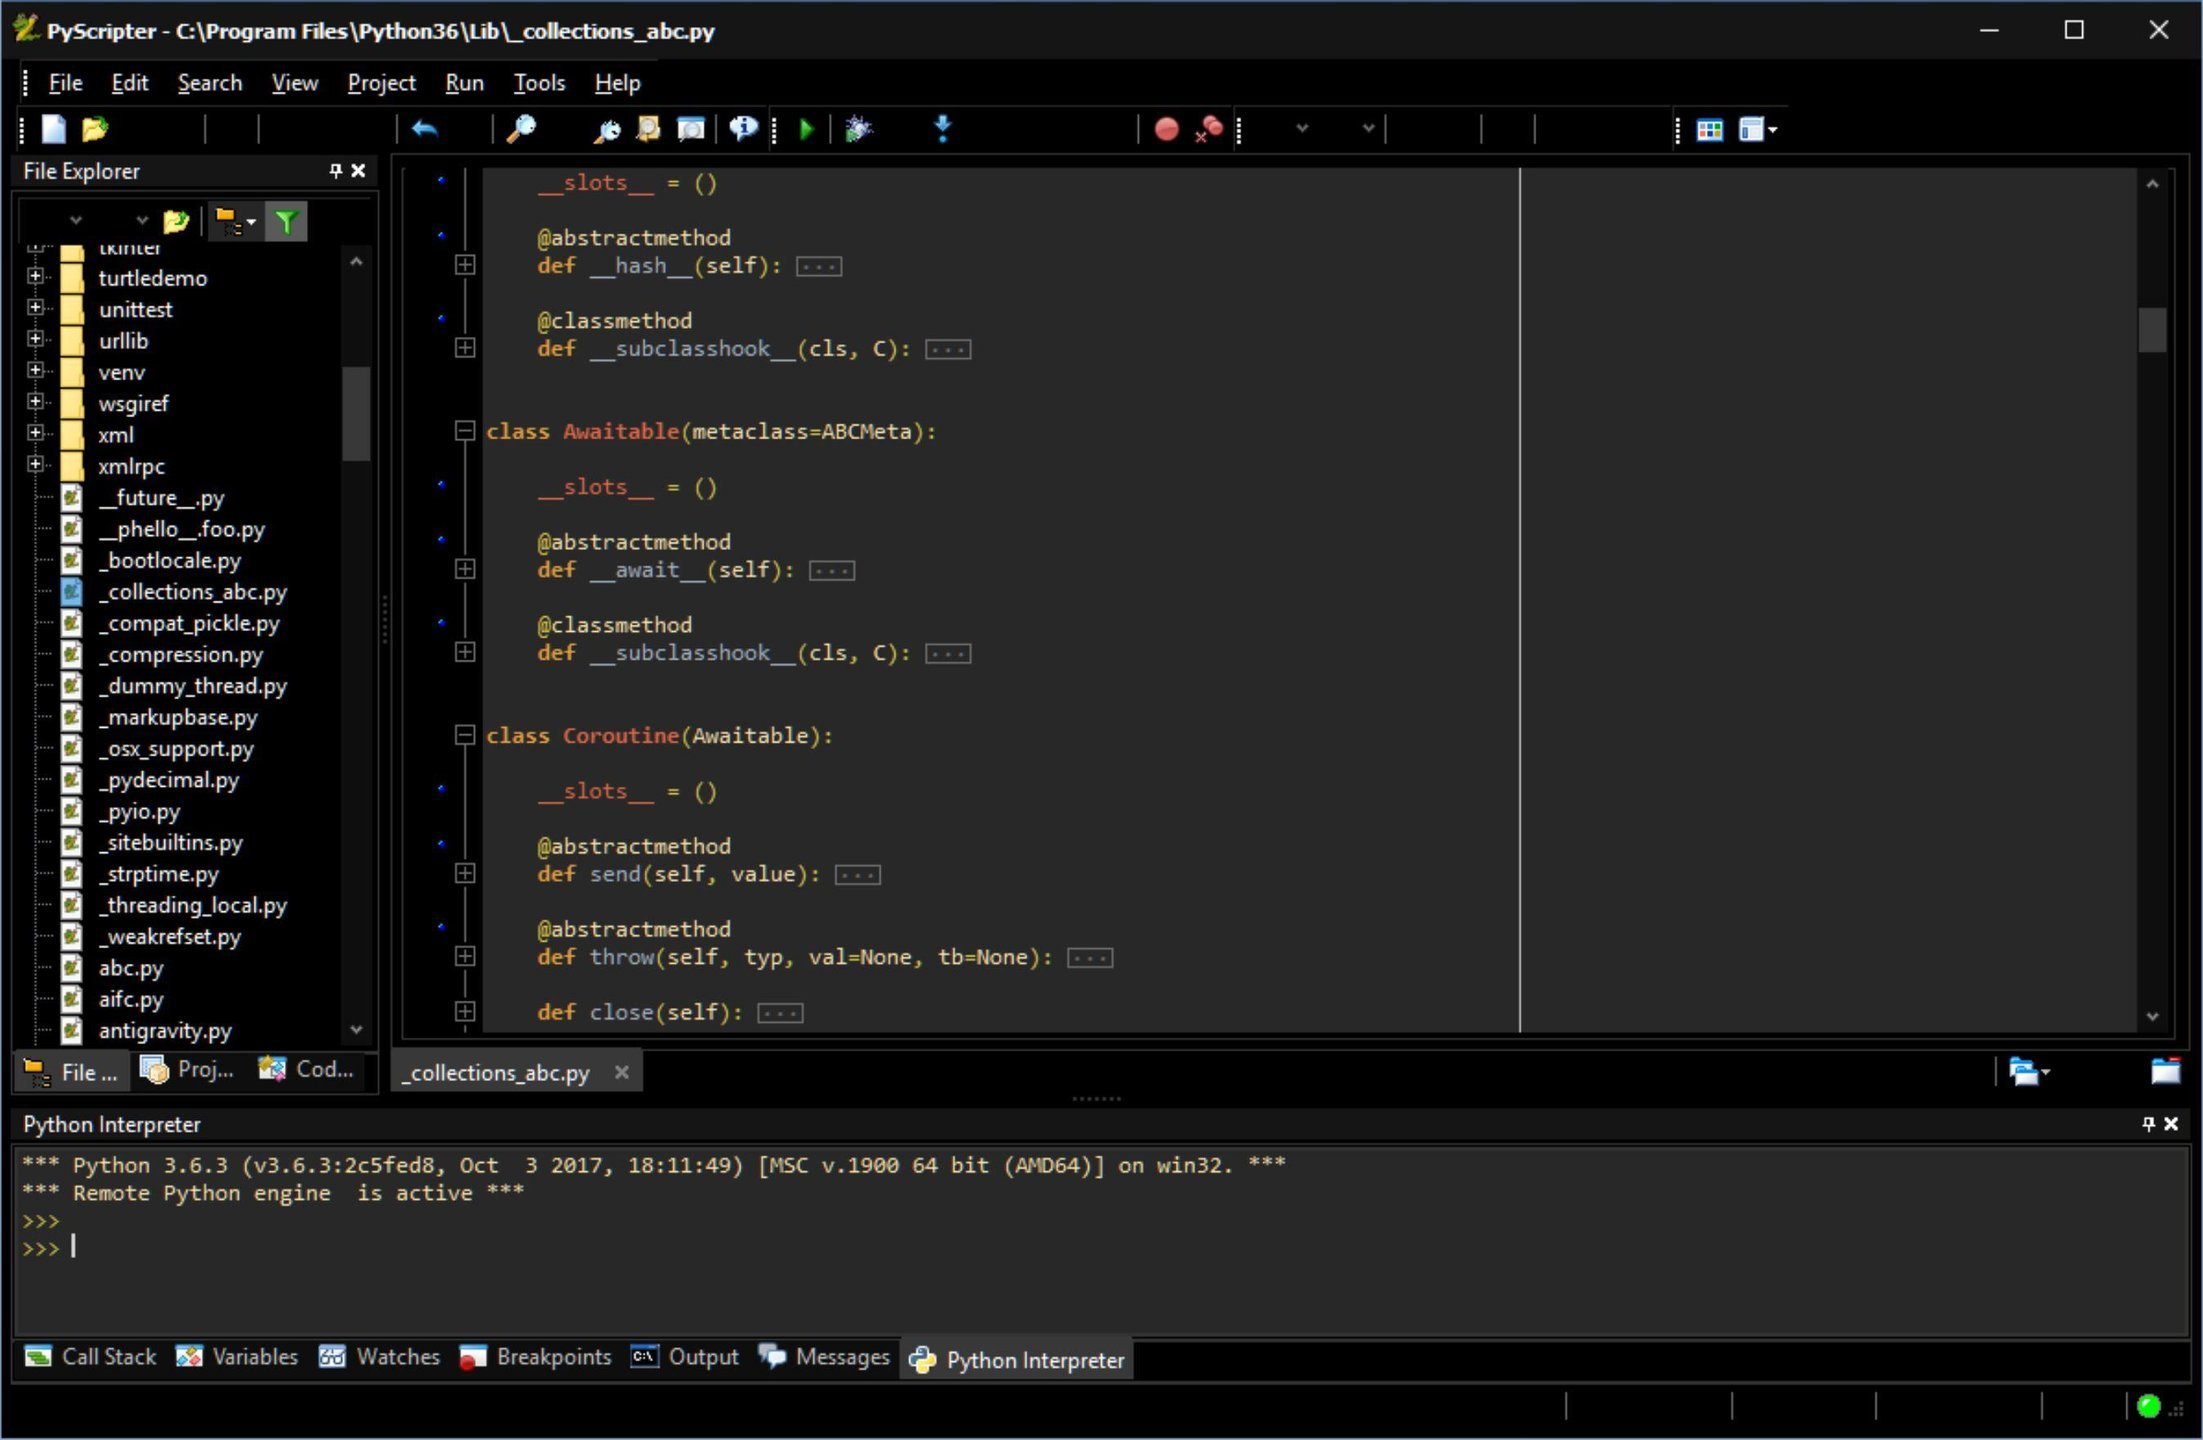 pyscripter for python 3.3